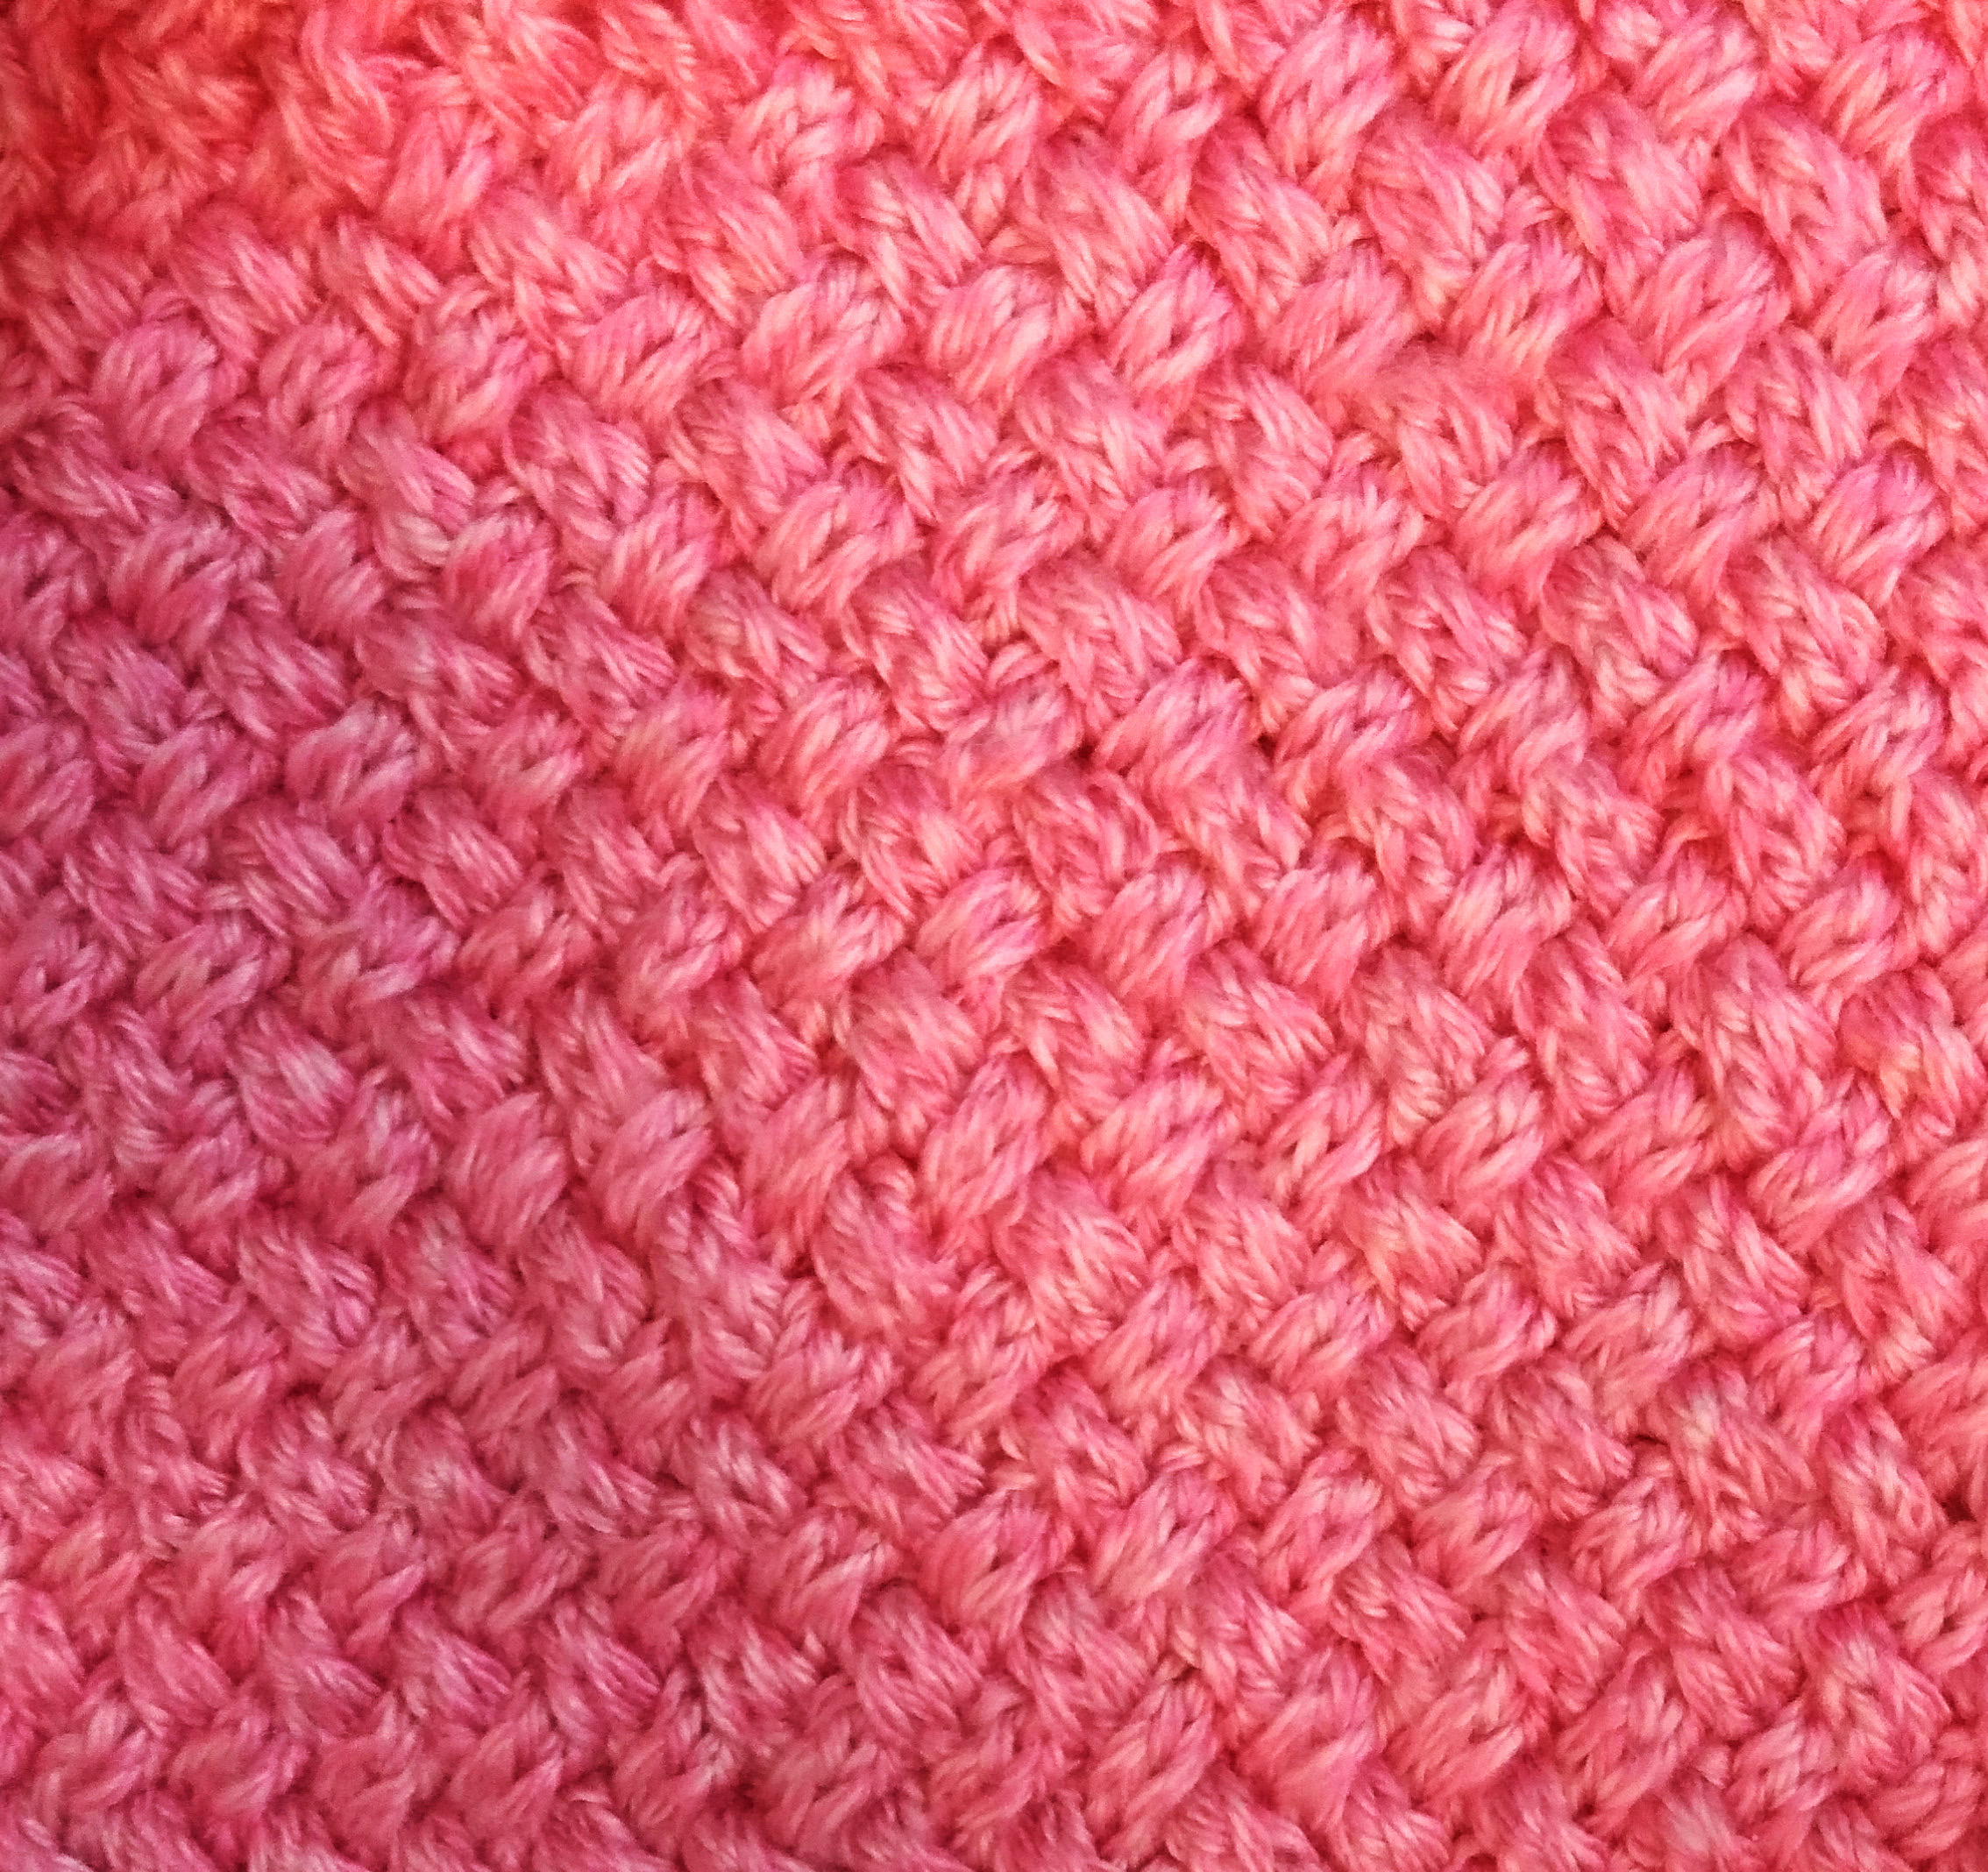 Knit, basket weave, cable 4 foward, cable 4 back,C4F, C4B, handmade, video